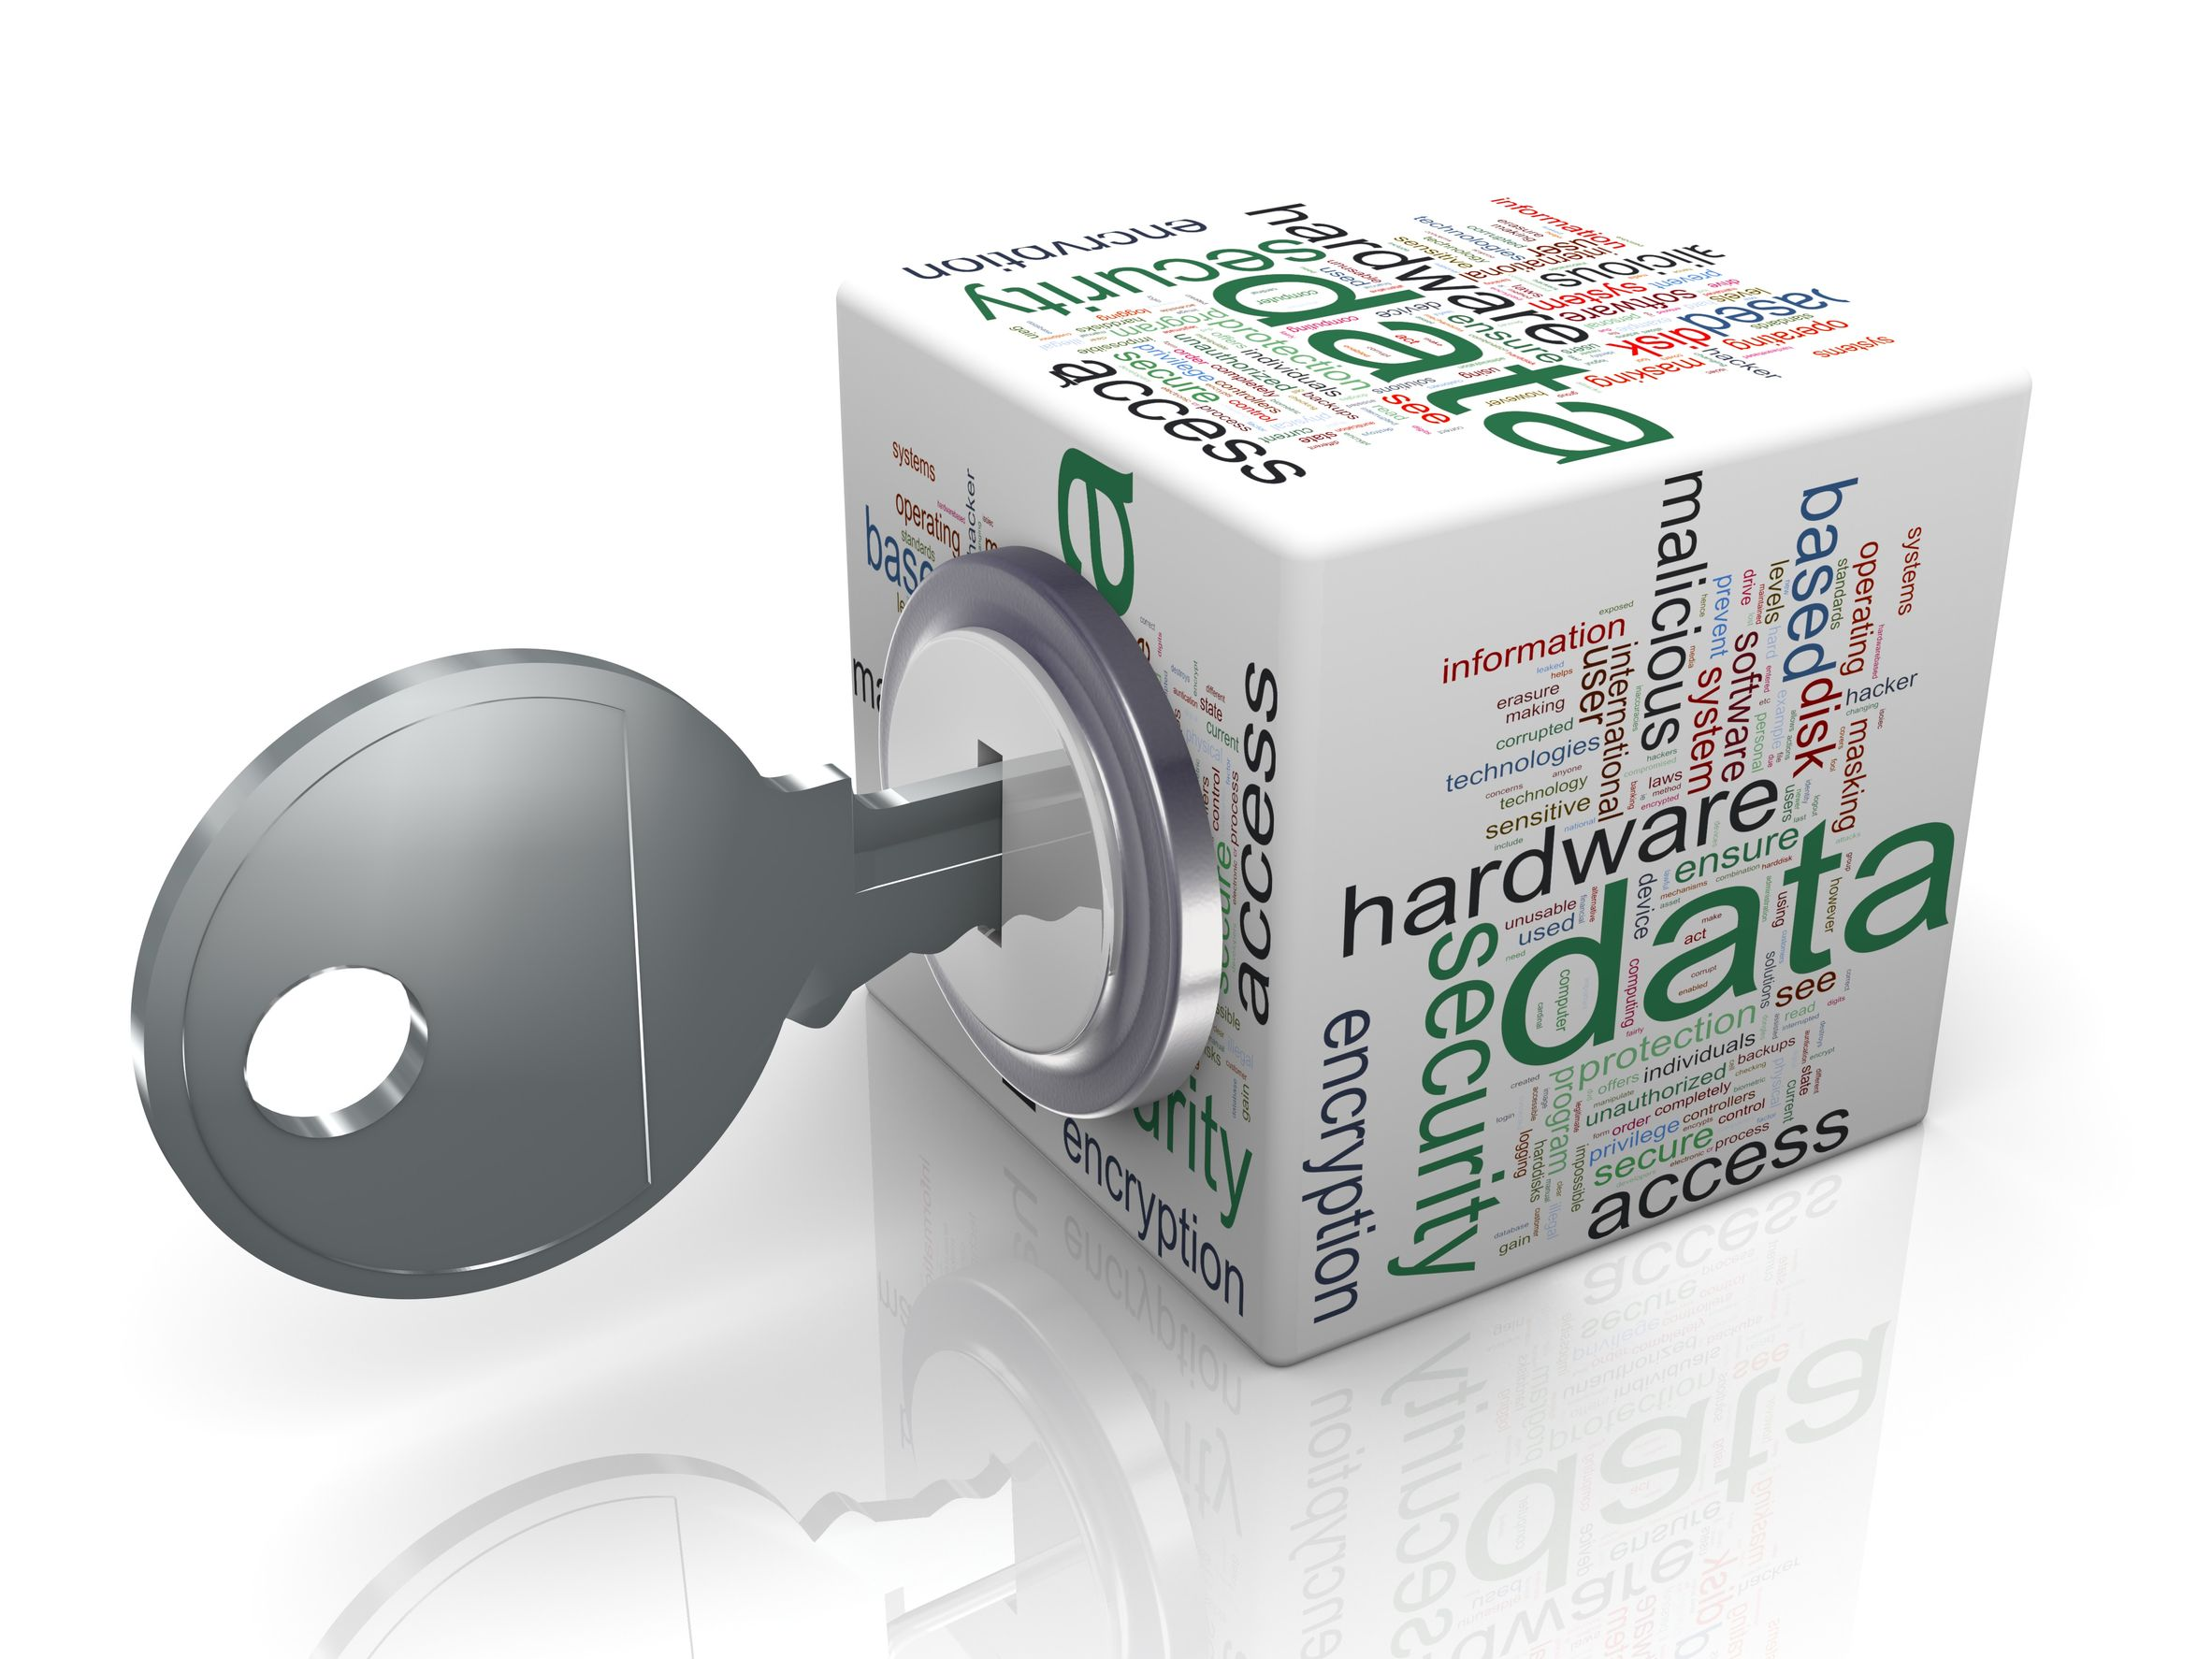 bigstock-Man-And-Data-Protection-Concep-39531229-900x670.jpg